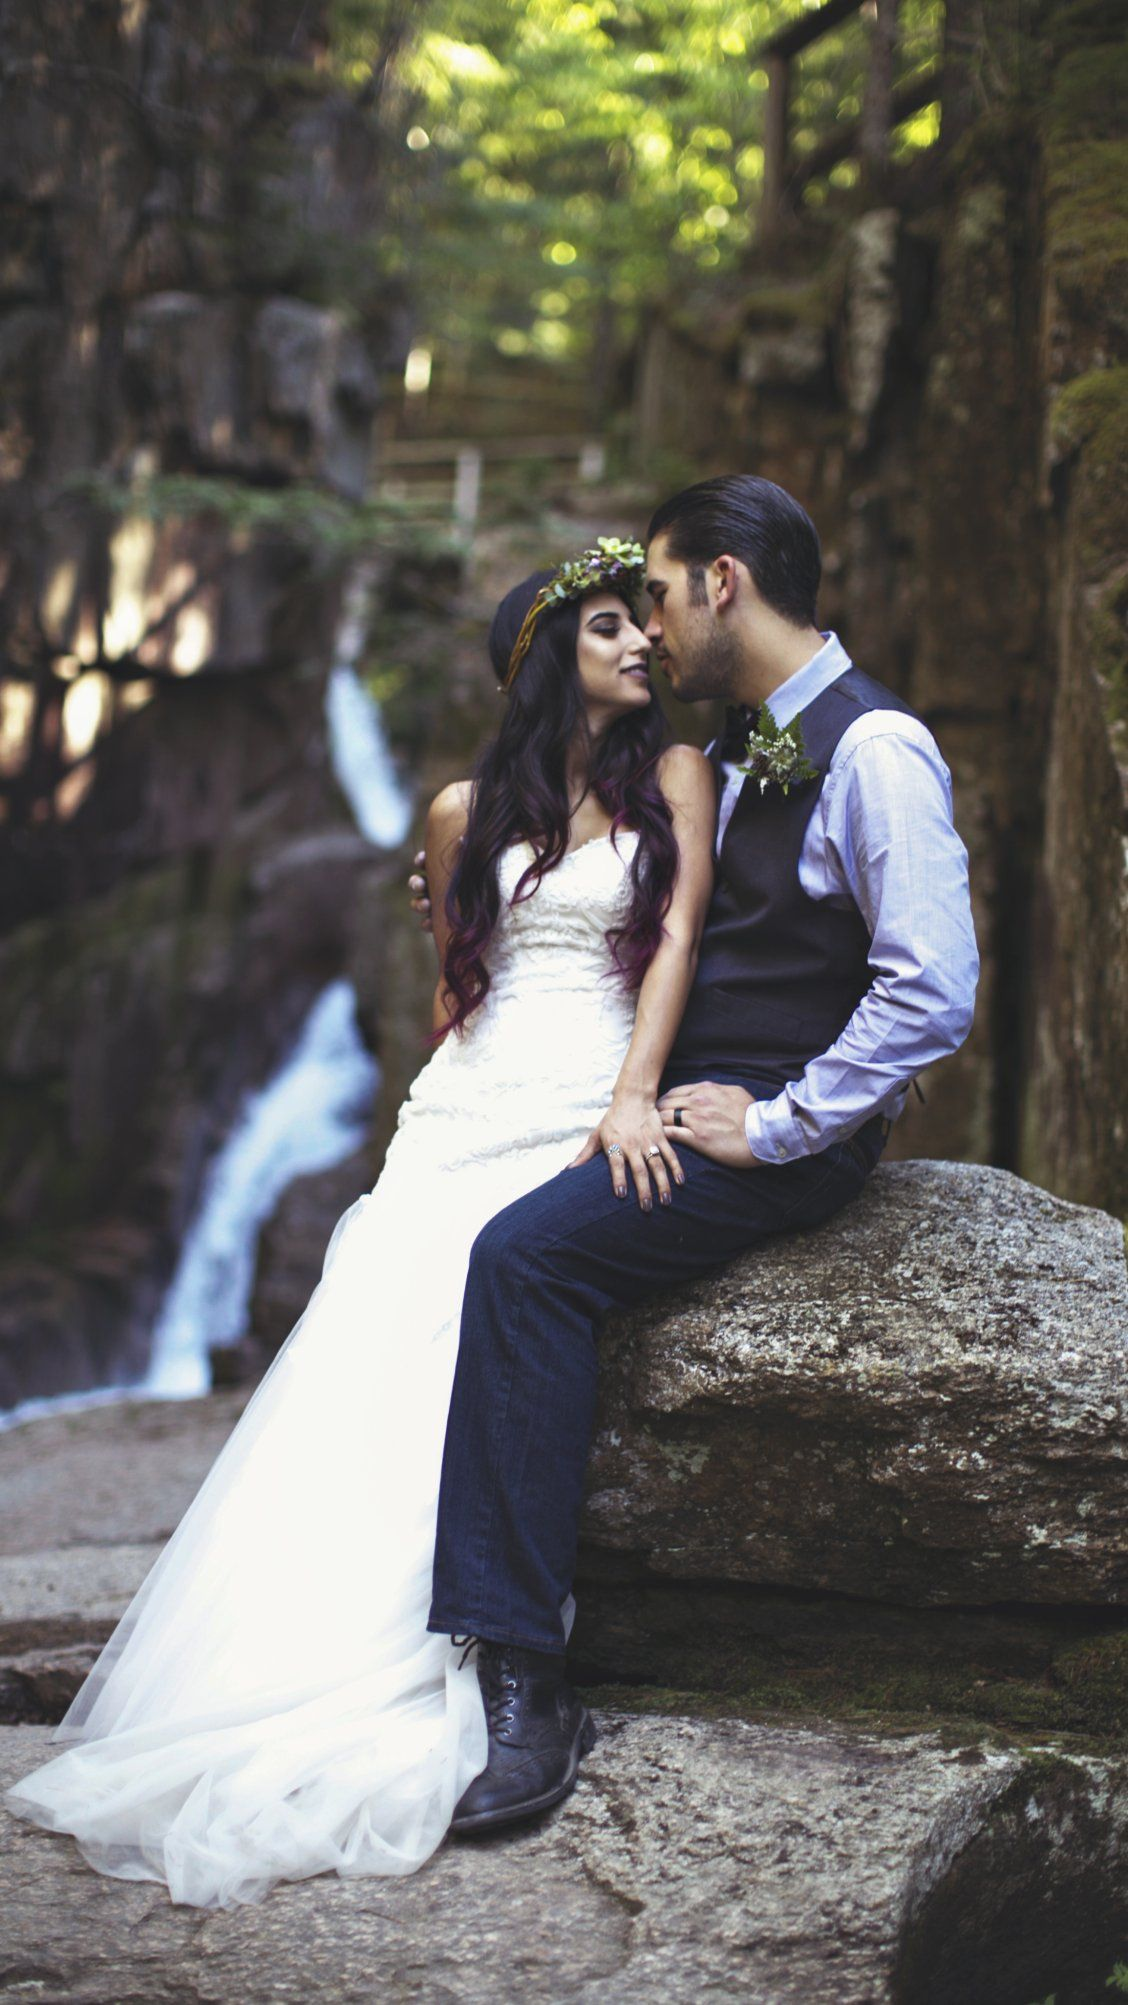 High school sweethearts marry in enchanted forest high school